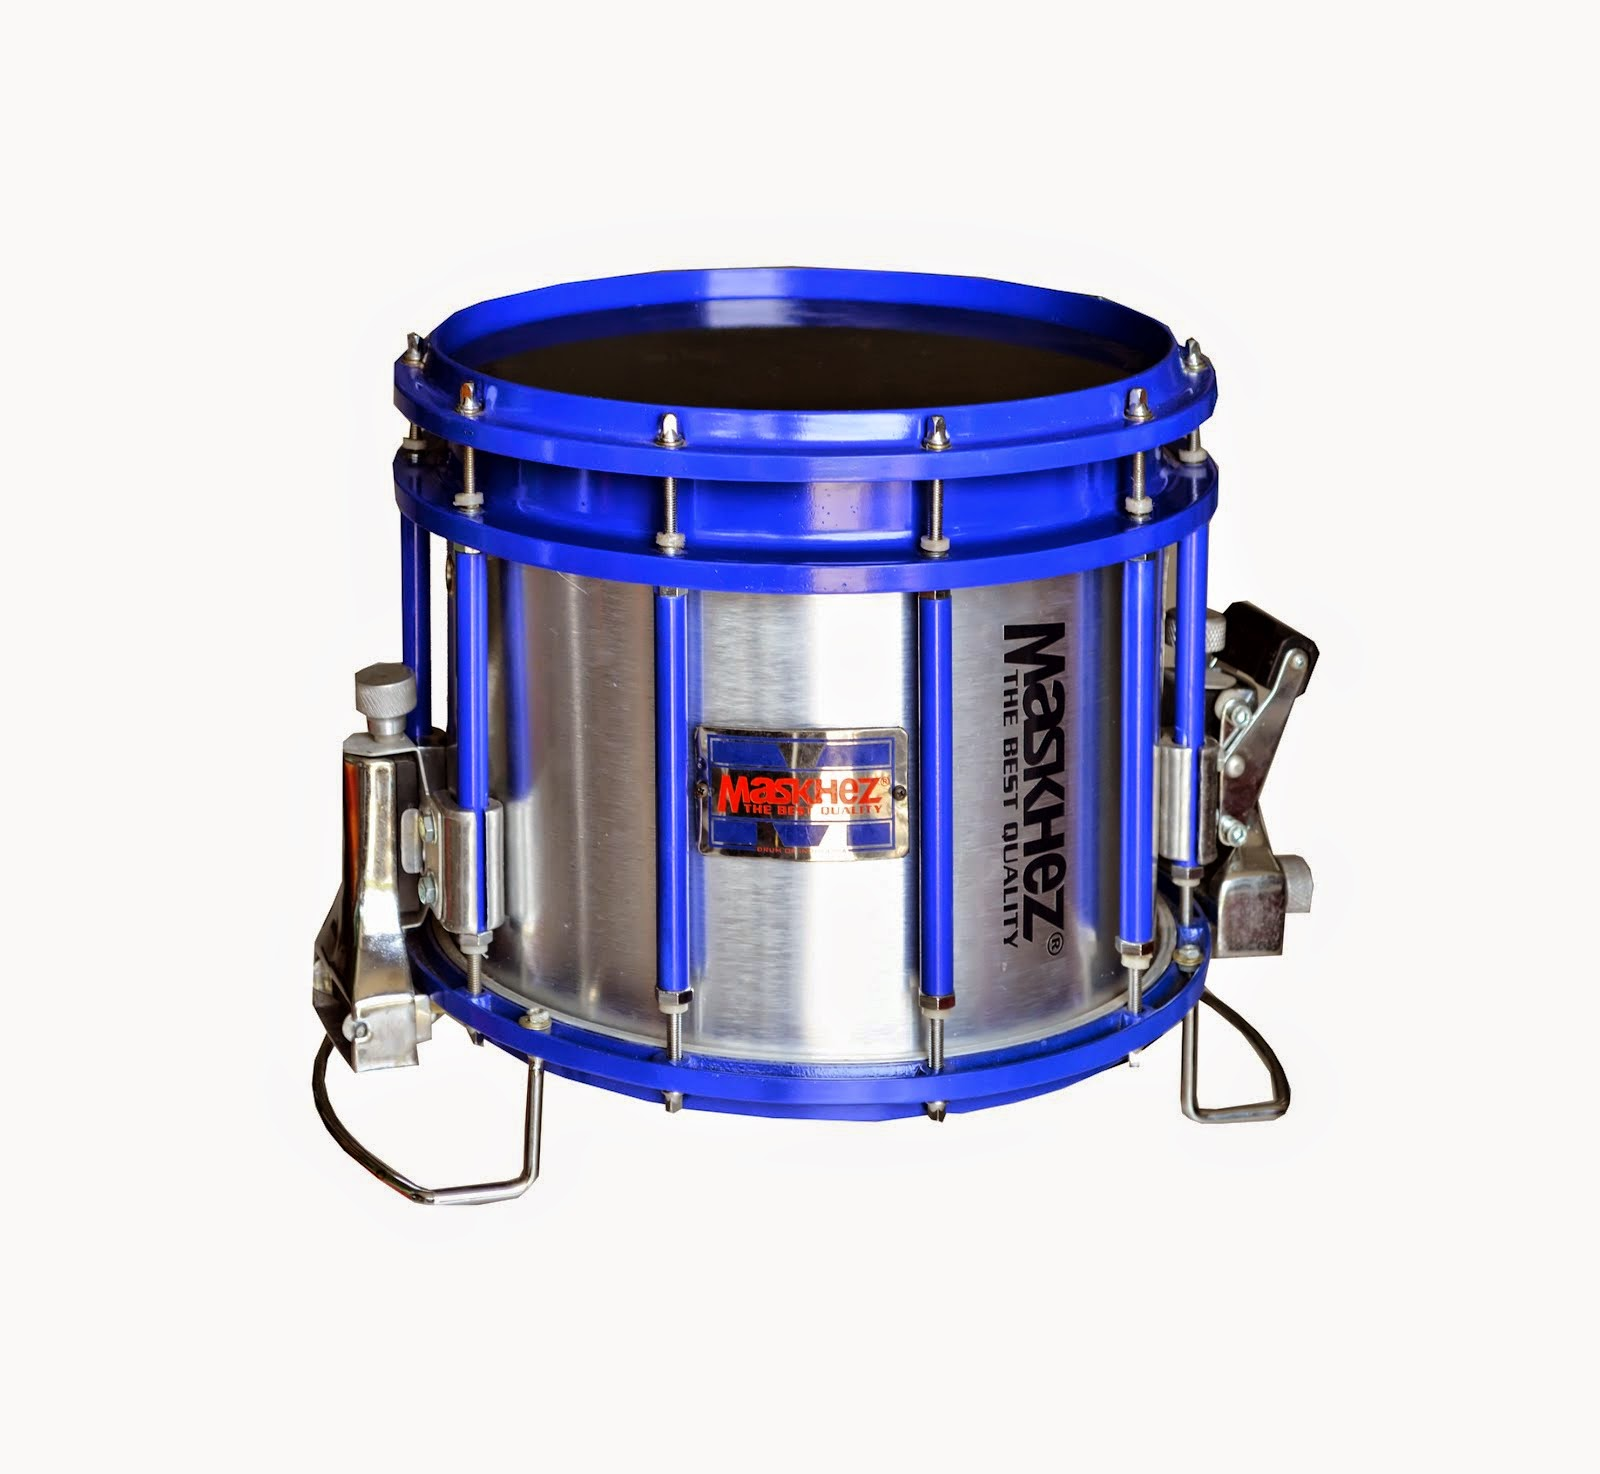 SNARE HTS 1209 SILVER BLUE